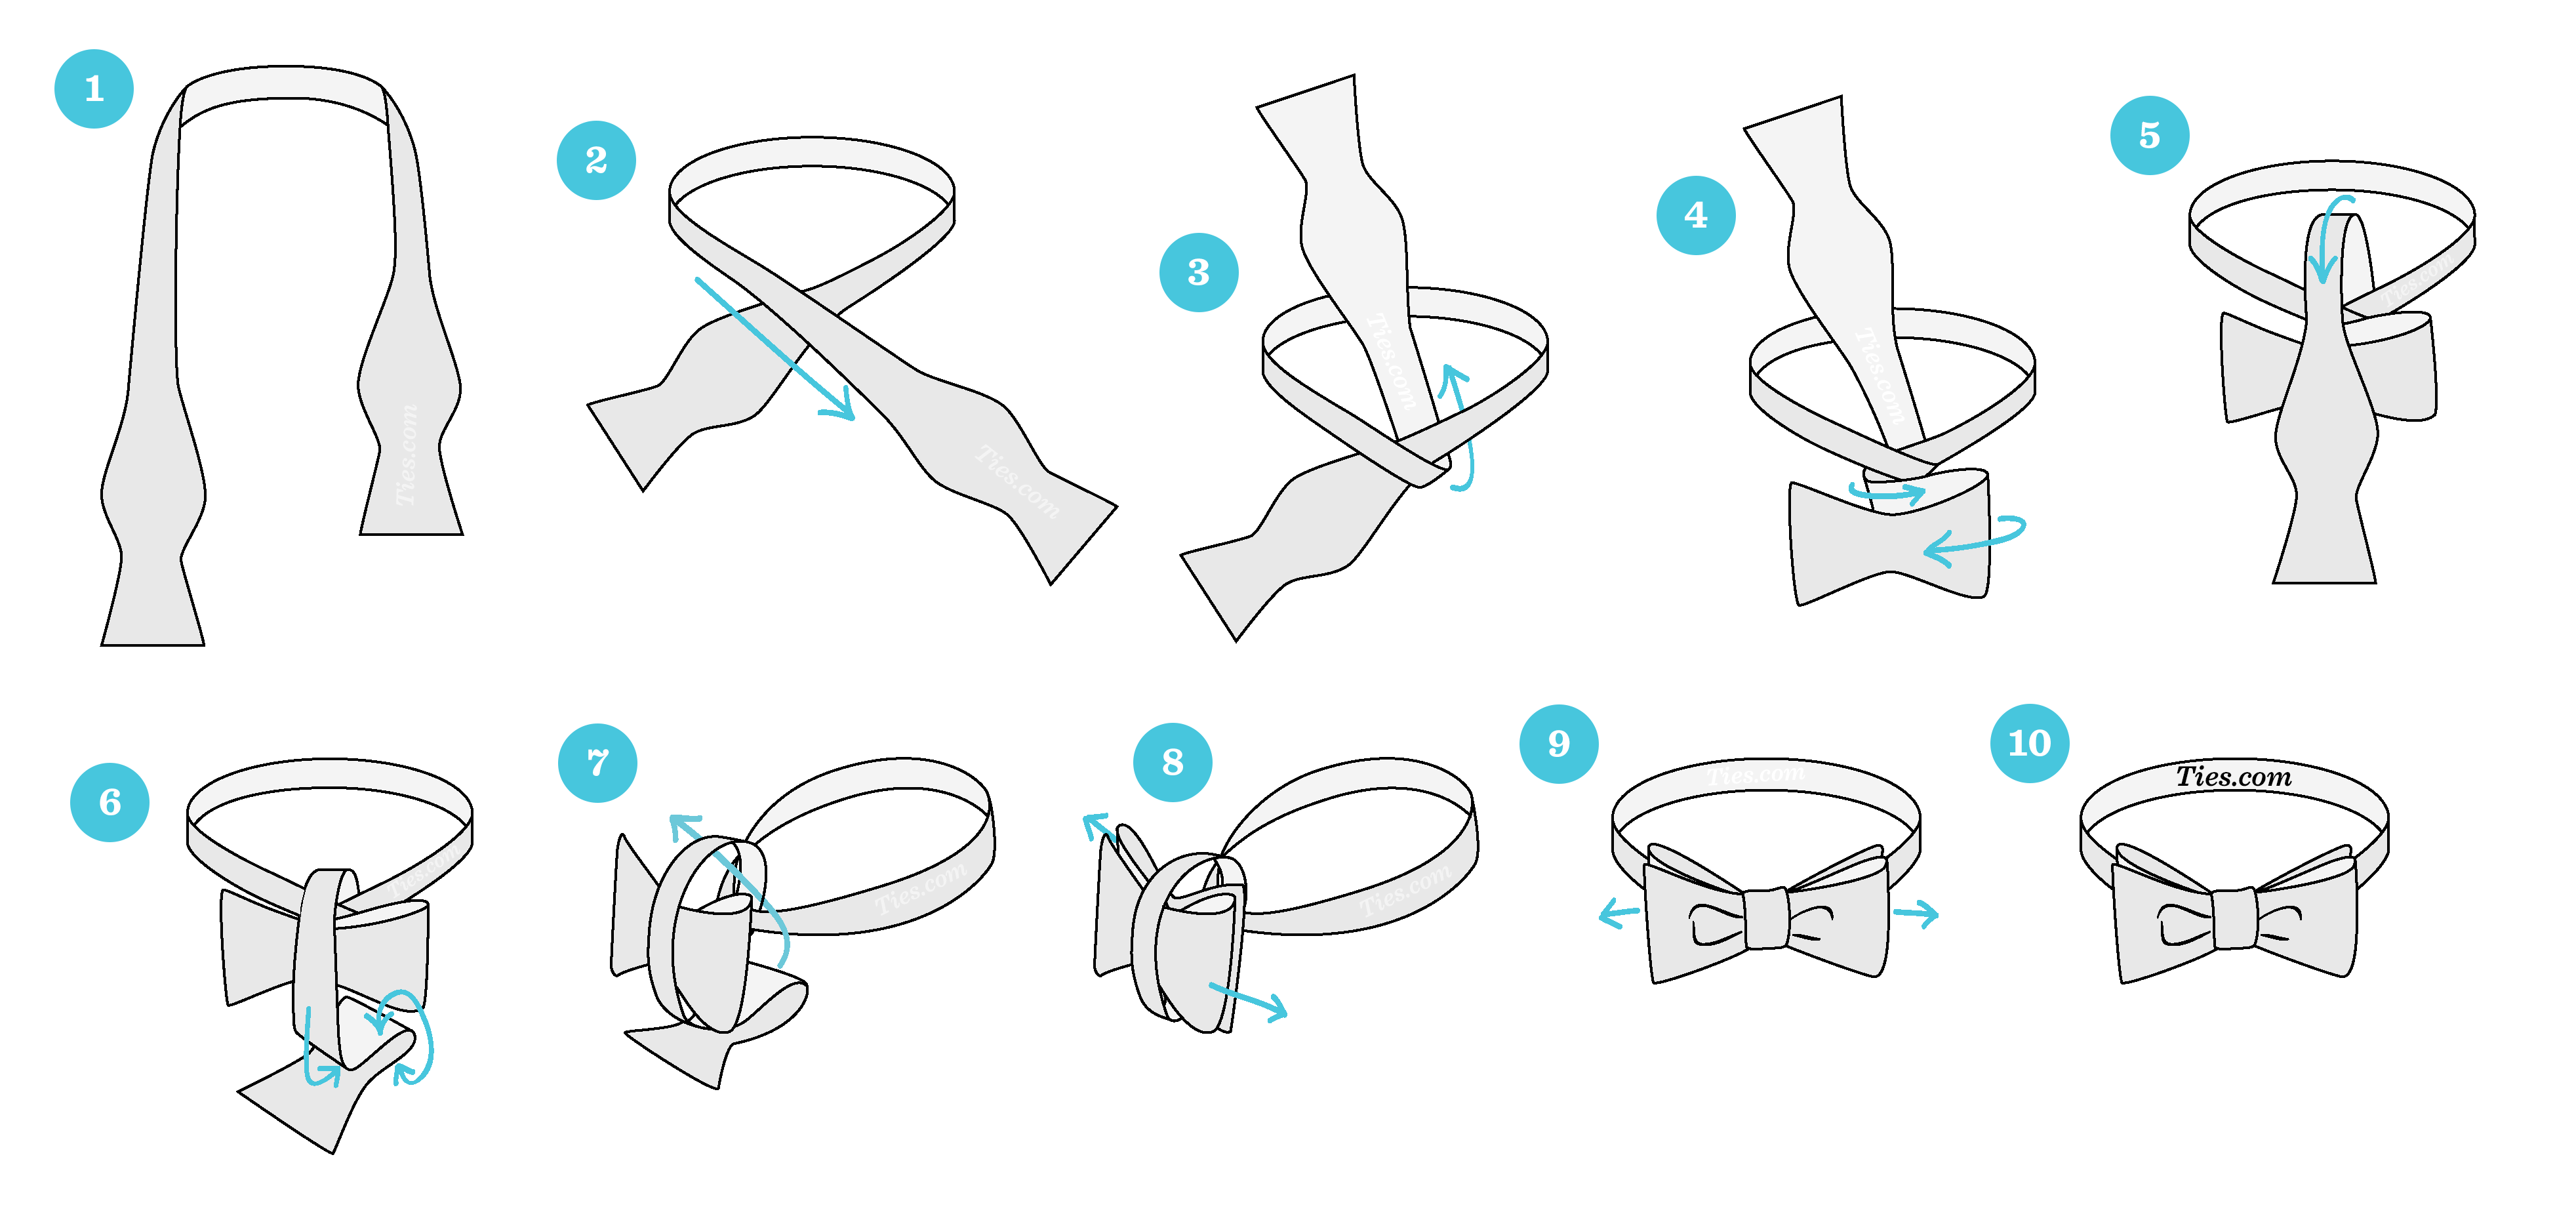 How to tie a bow tie bow tie tying instructions XNAEBWQ